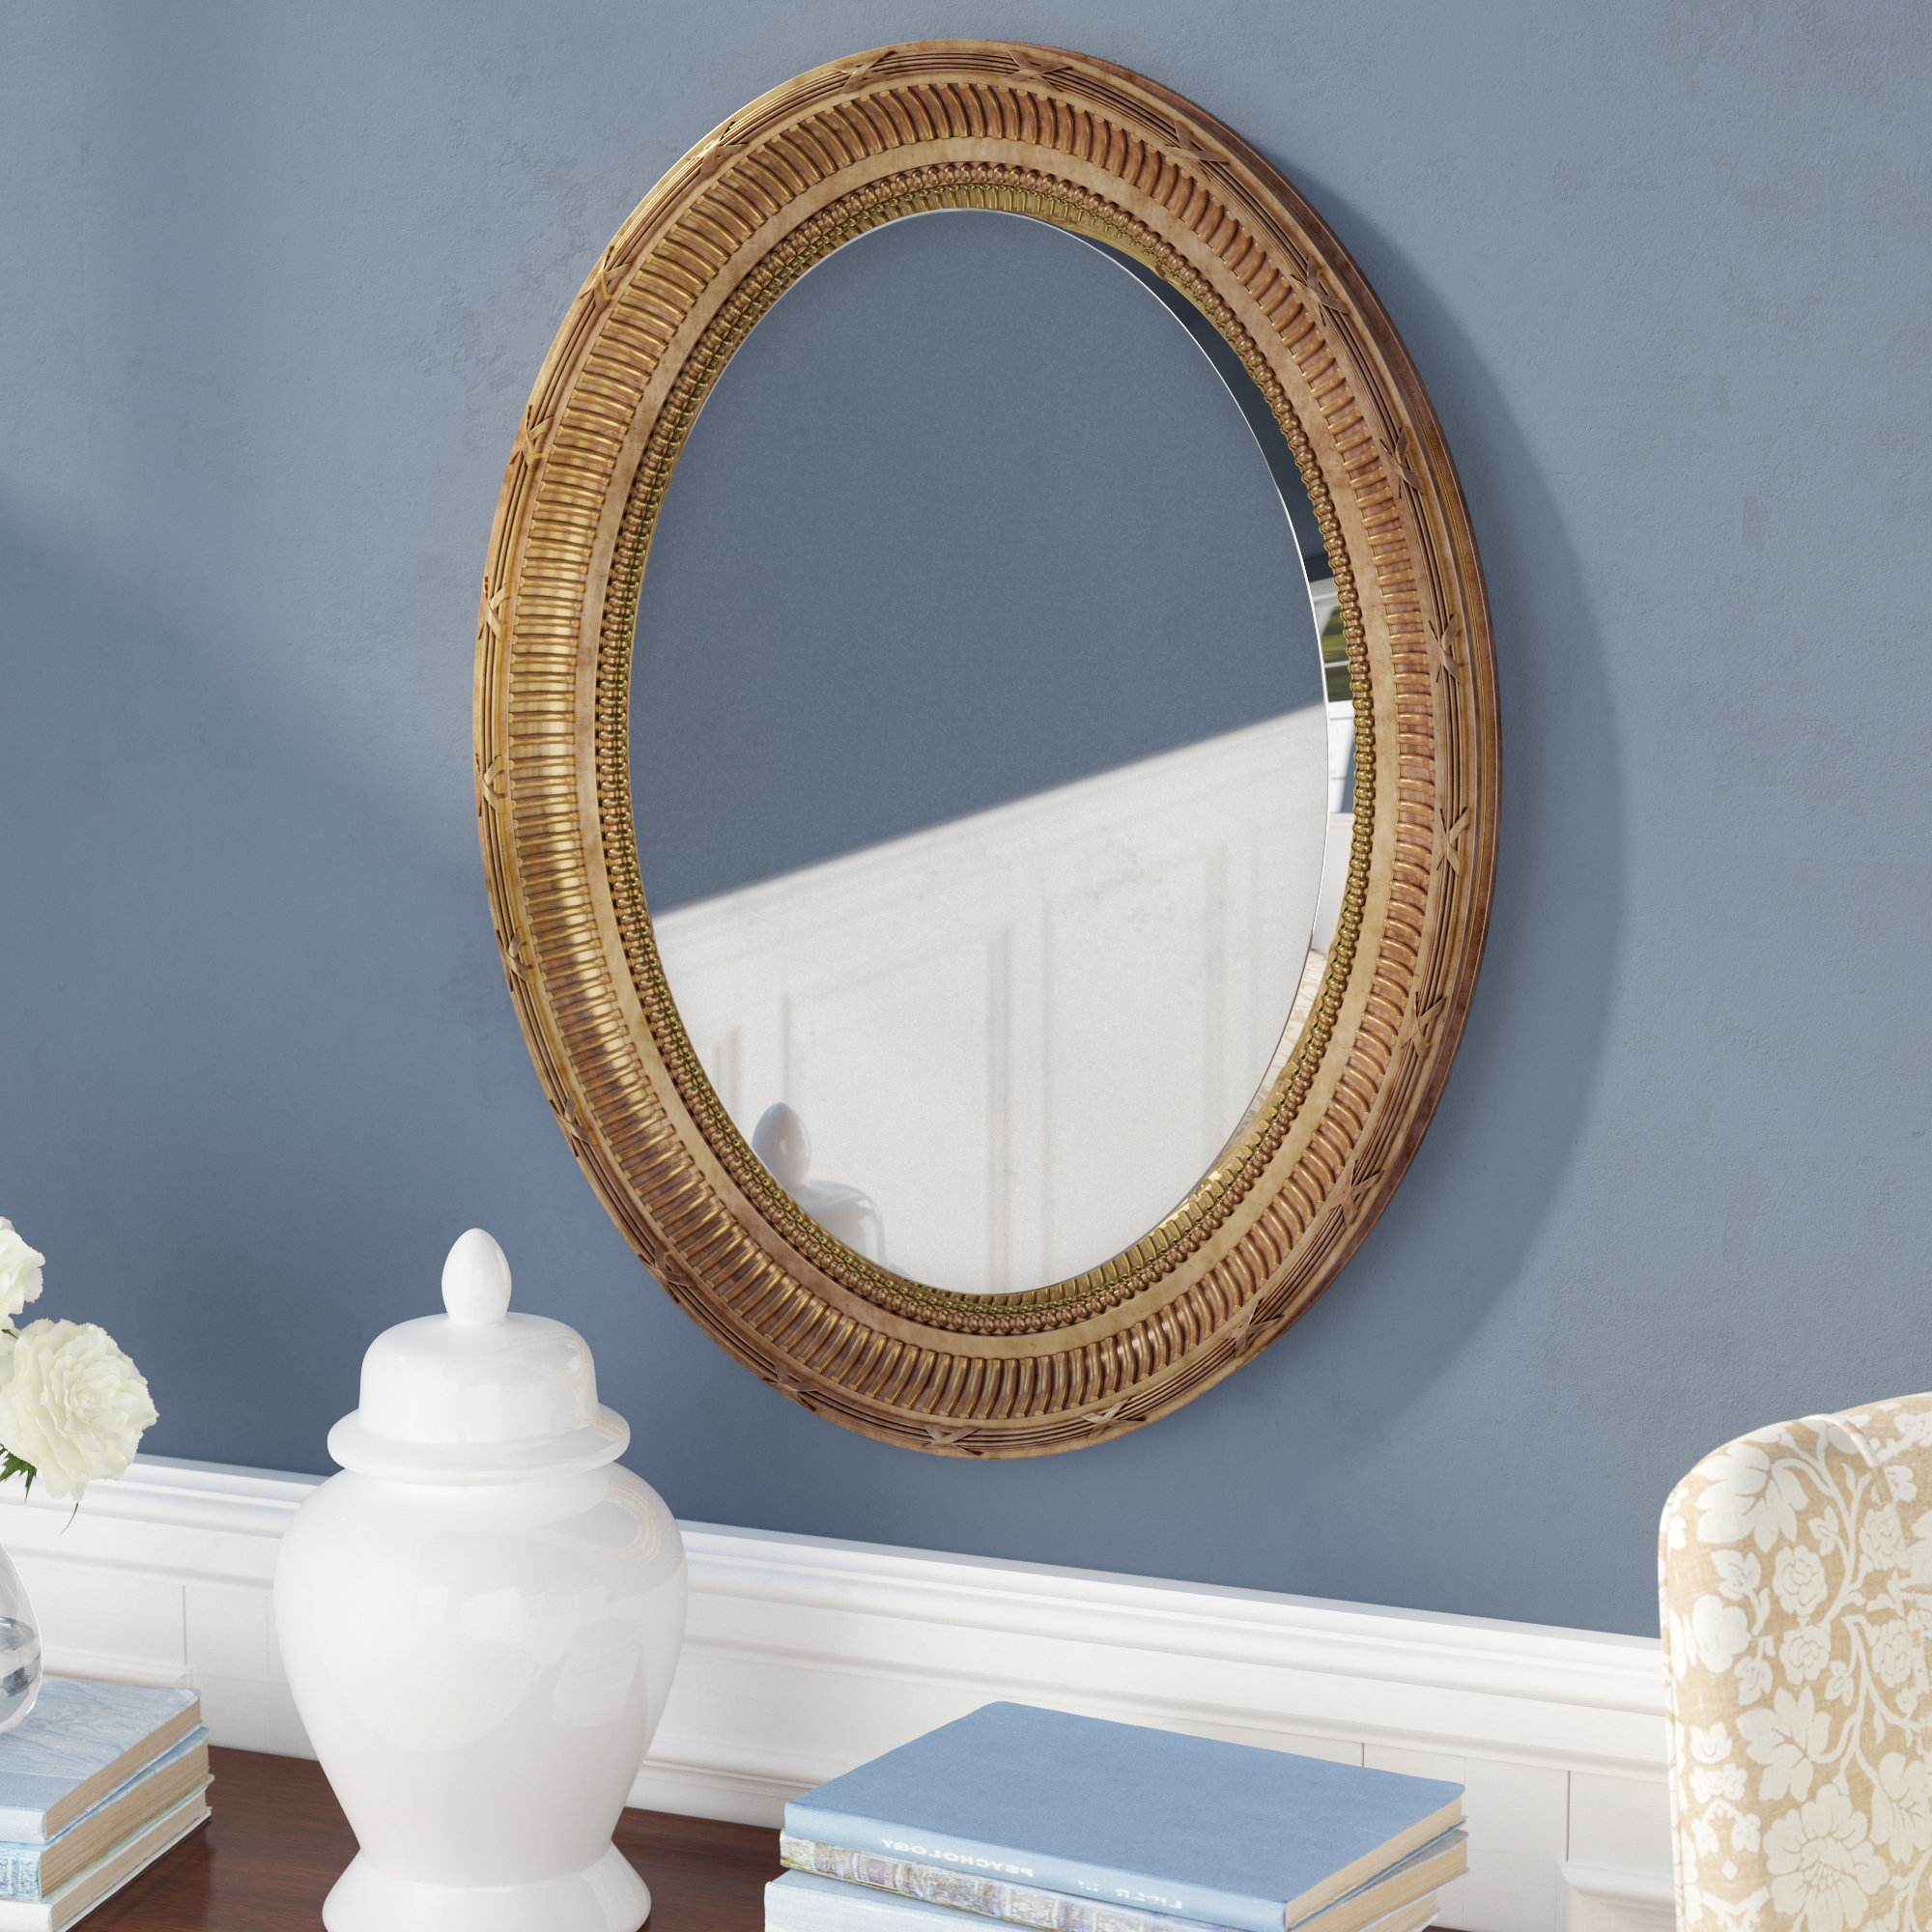 Mcnary Accent Mirrors Intended For Widely Used Country Gold Oval Accent Mirror (View 8 of 20)